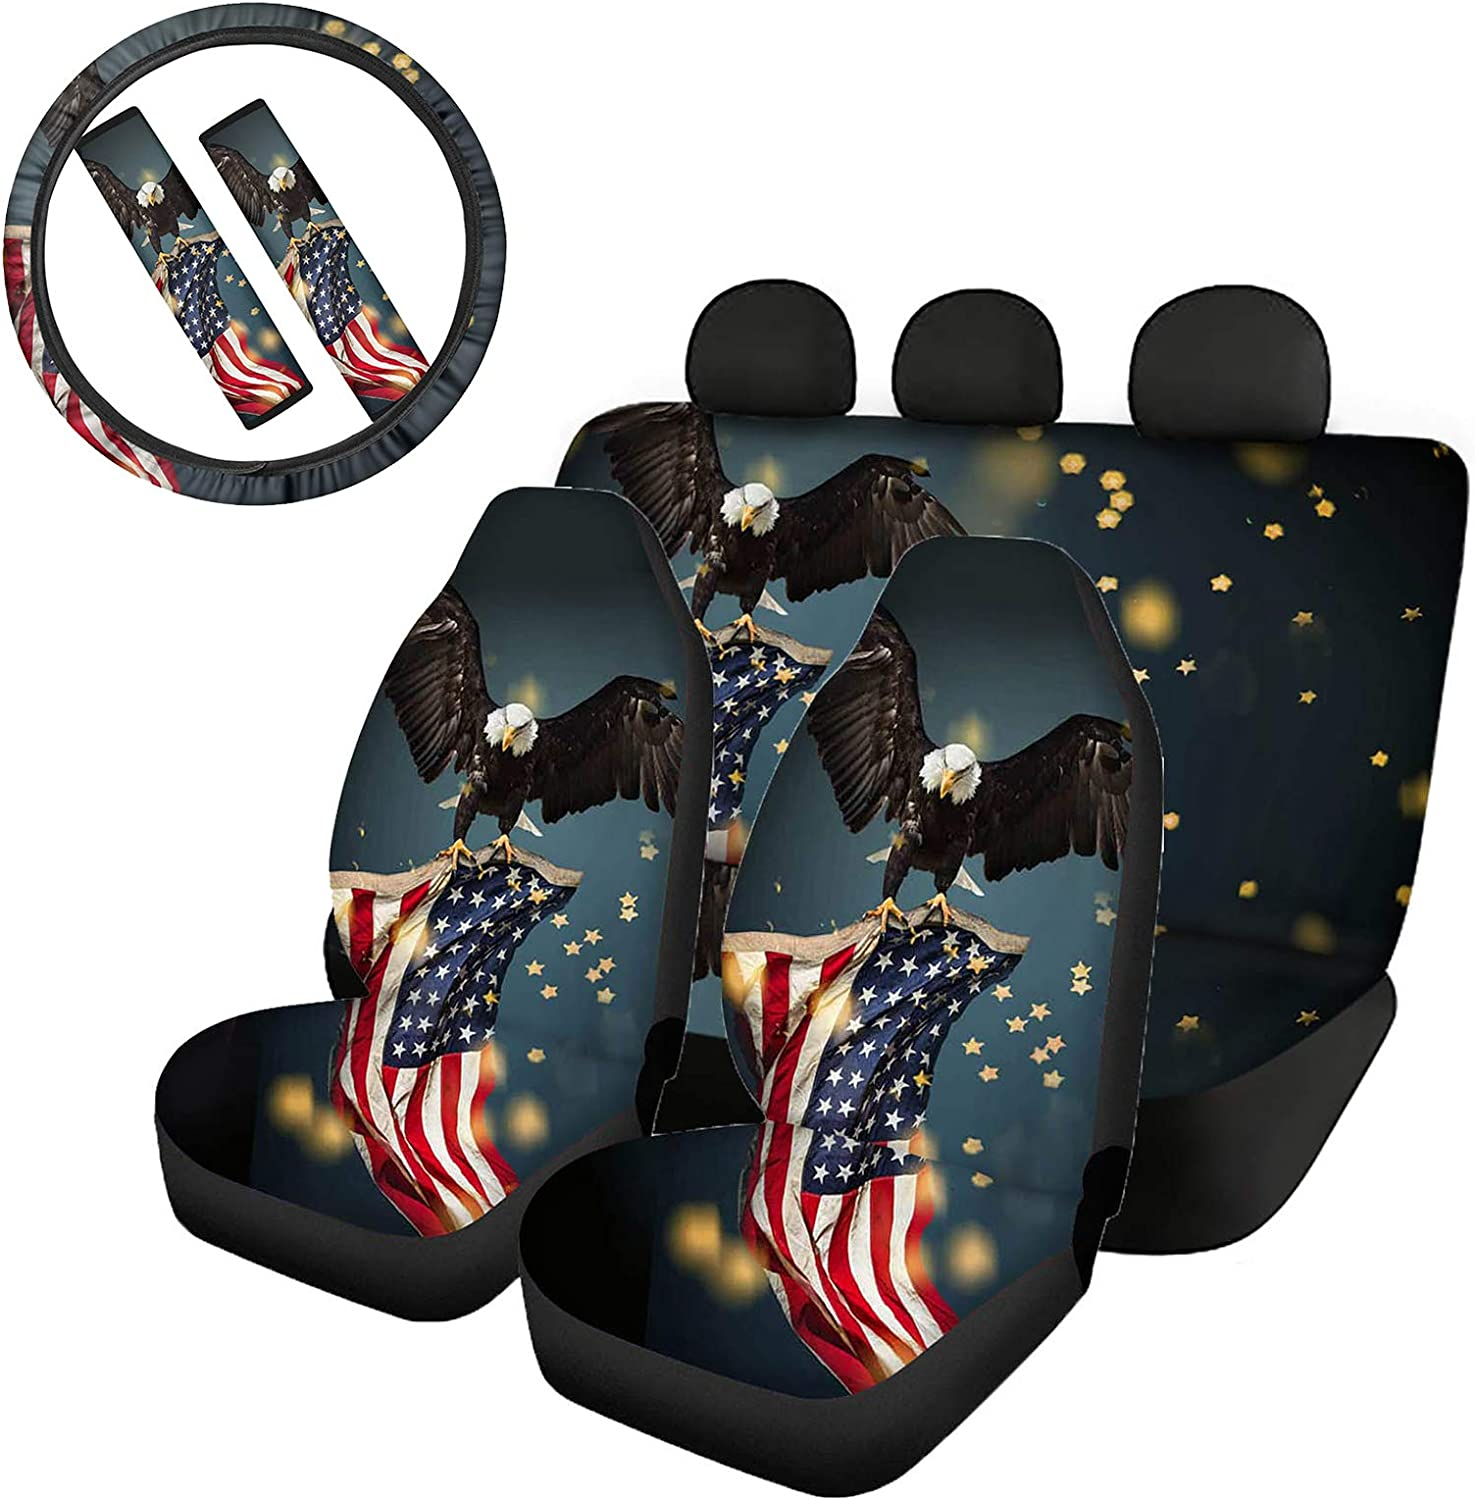 GePrint Breathable Classic Front and Rear Seat Covers Protector for Women Men,American Flag Eagle Pattern Seat Cushion with Steering Wheel Cover Seatbelt Clip Covers Universal Fit Trucks Van 7 in1